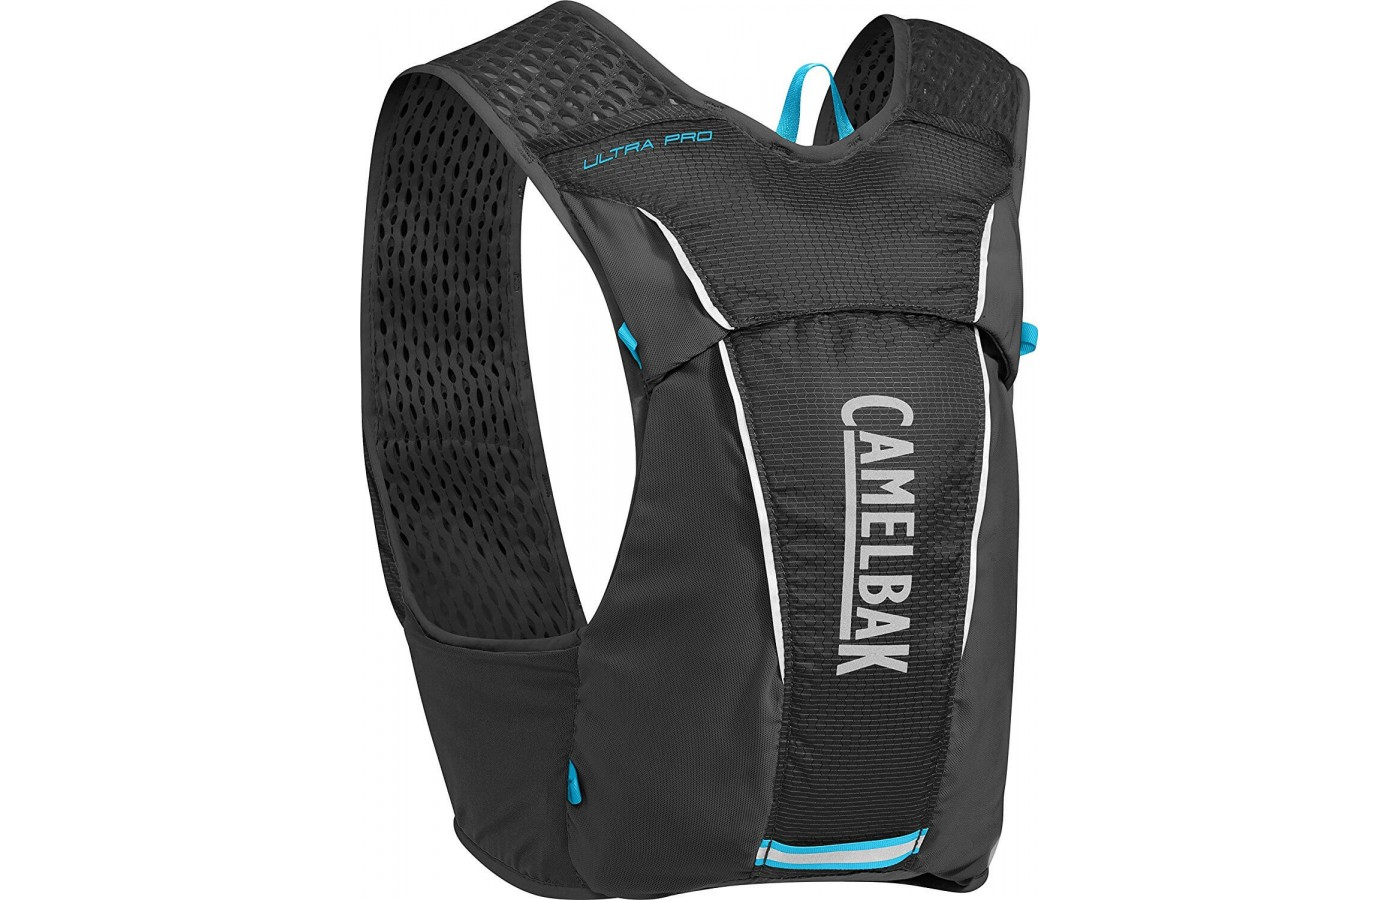 This hydration pack comes with 9 pockets to carry all of your race day essentials.